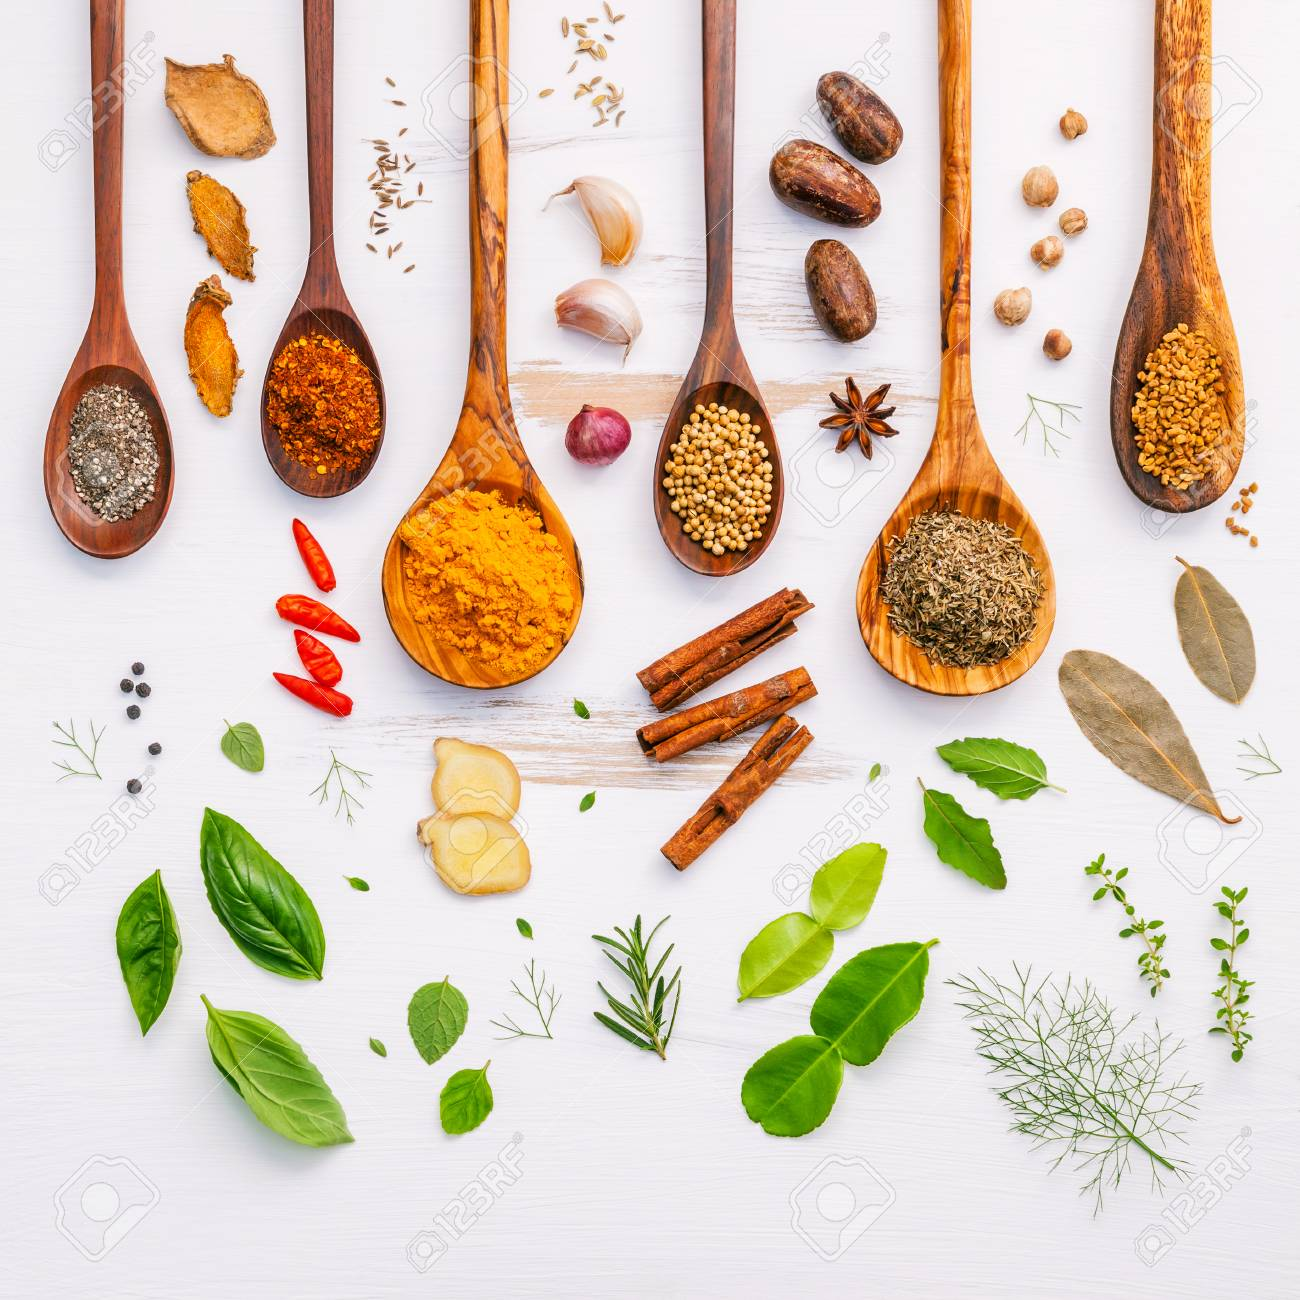 Flat lay of spices ingredients chilli ,pepper, garlic,dries thyme, cinnamon,star anise, nutmeg,rosemary, sweet basil and kaffir lime on wooden background. - 65512588